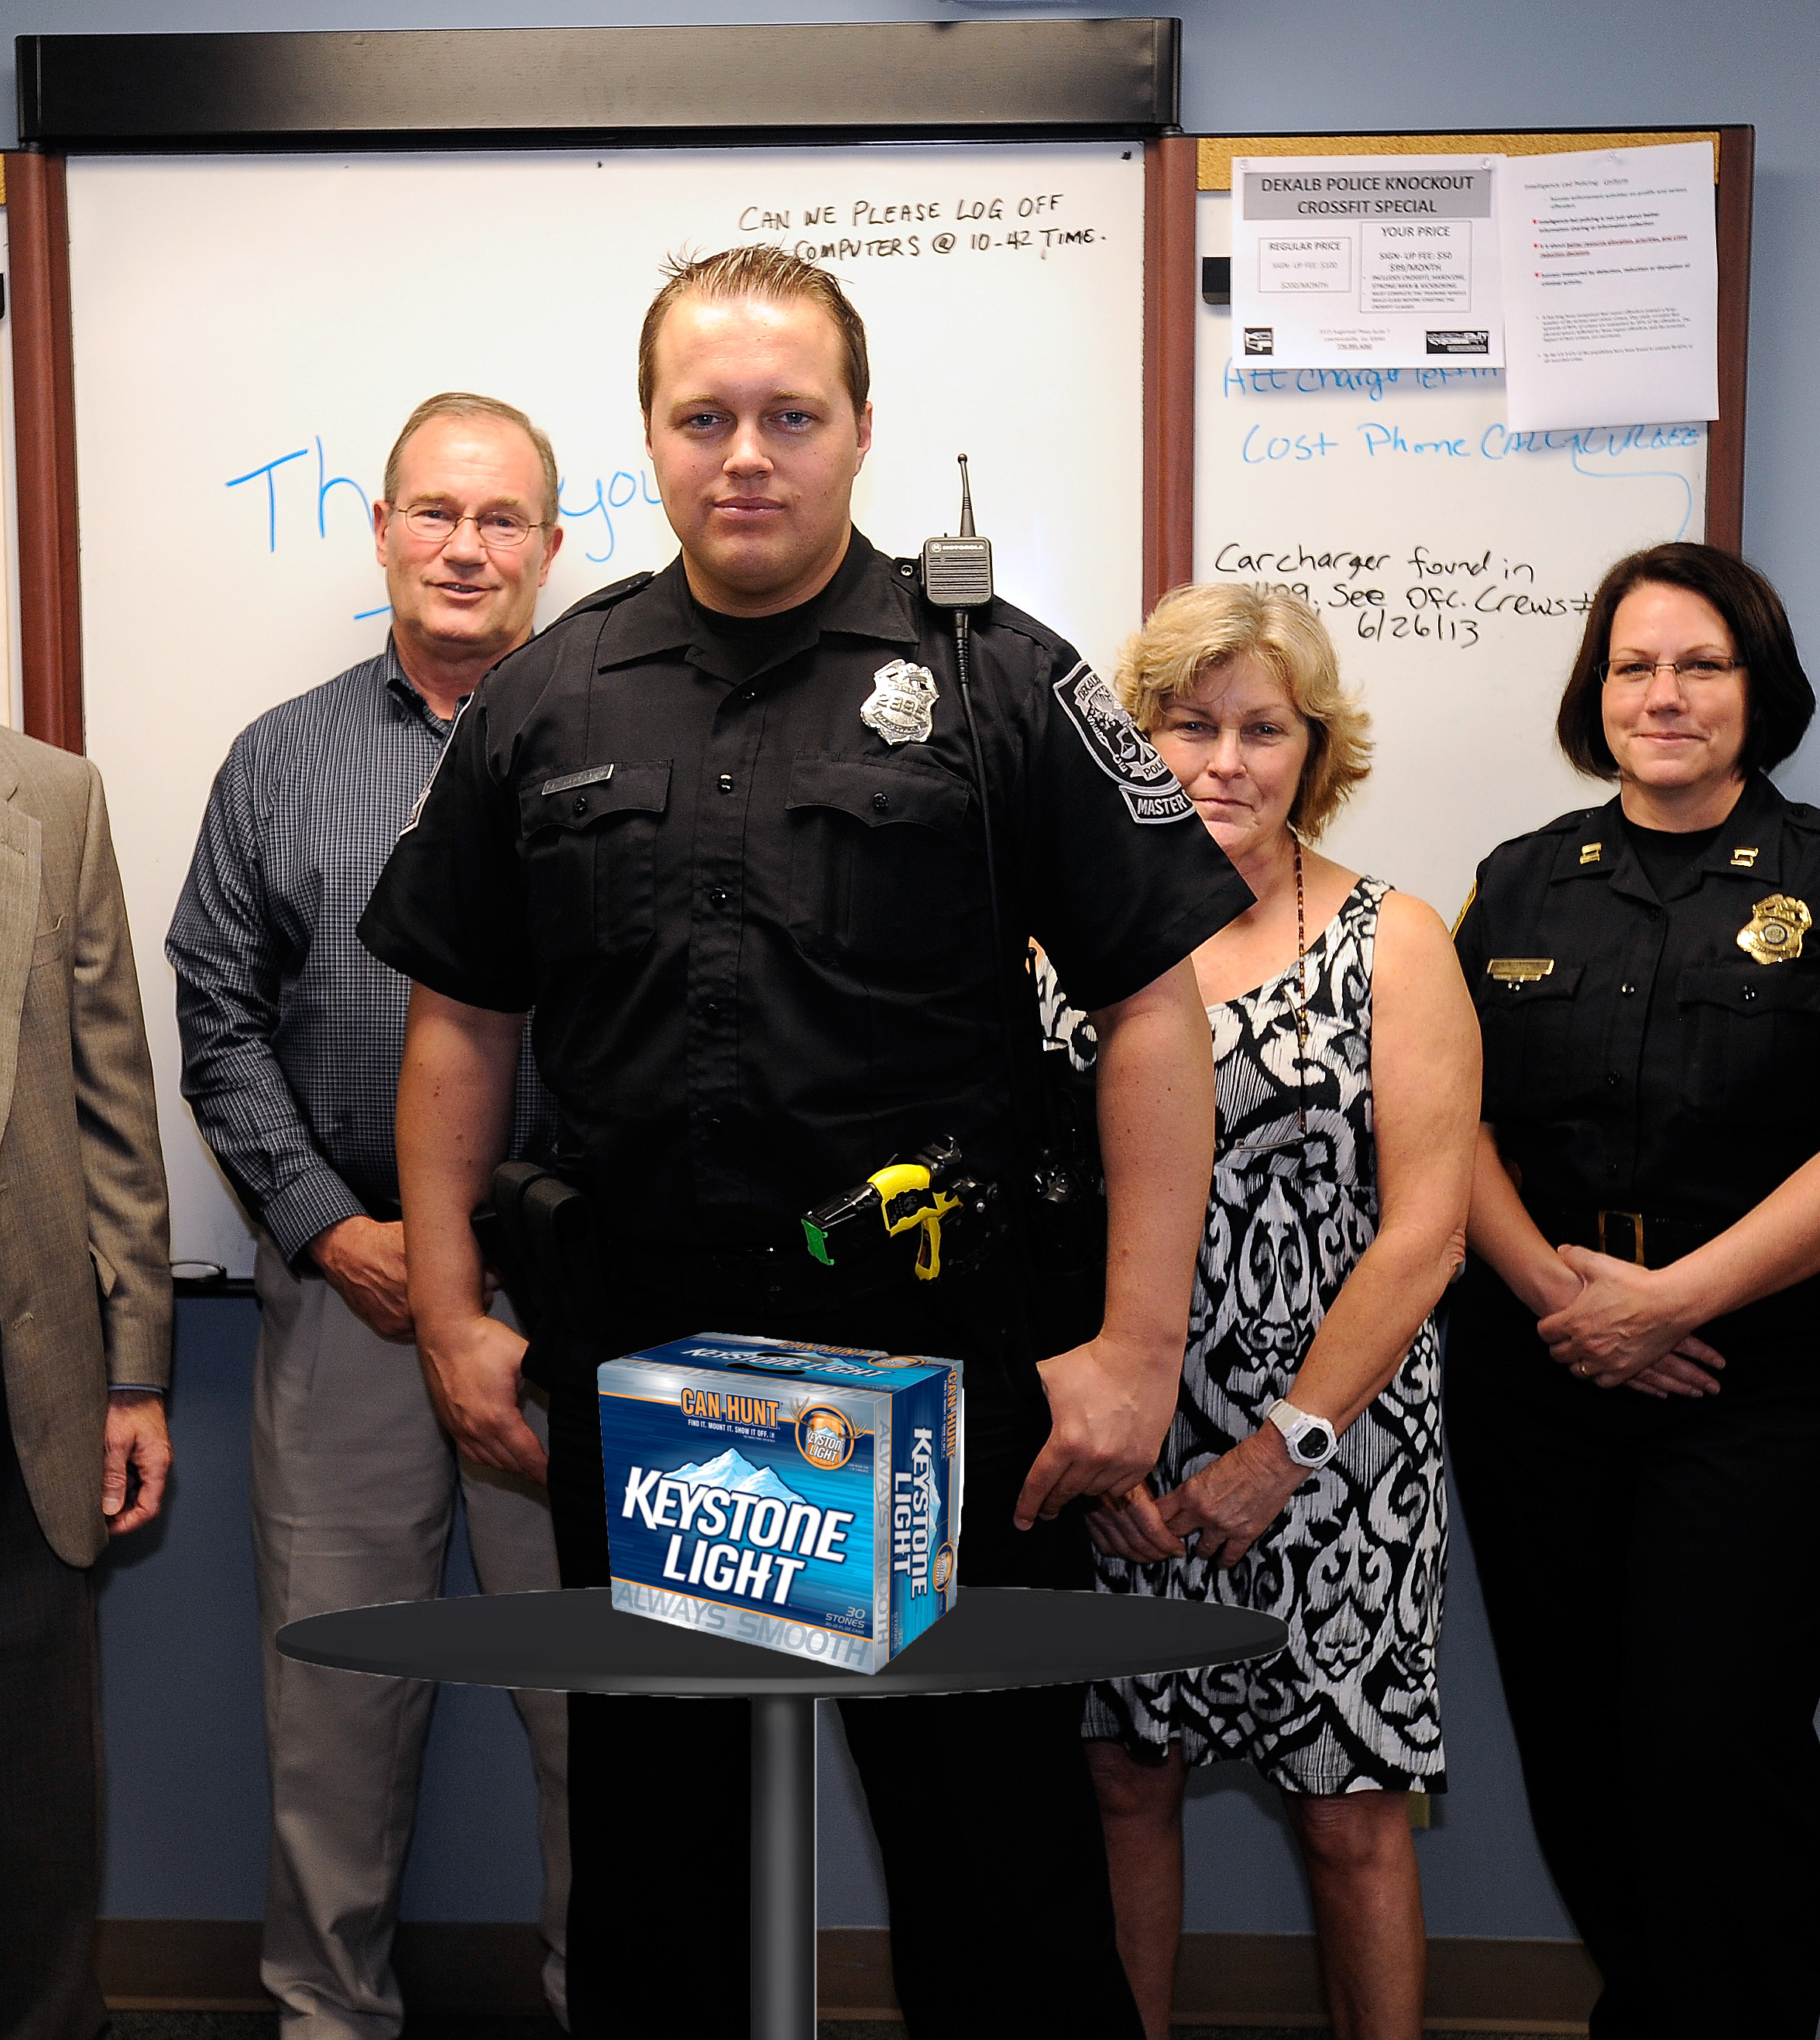 Cpt. Jennings and his squadron pose behind the confiscated narcotics from the milestone bust.